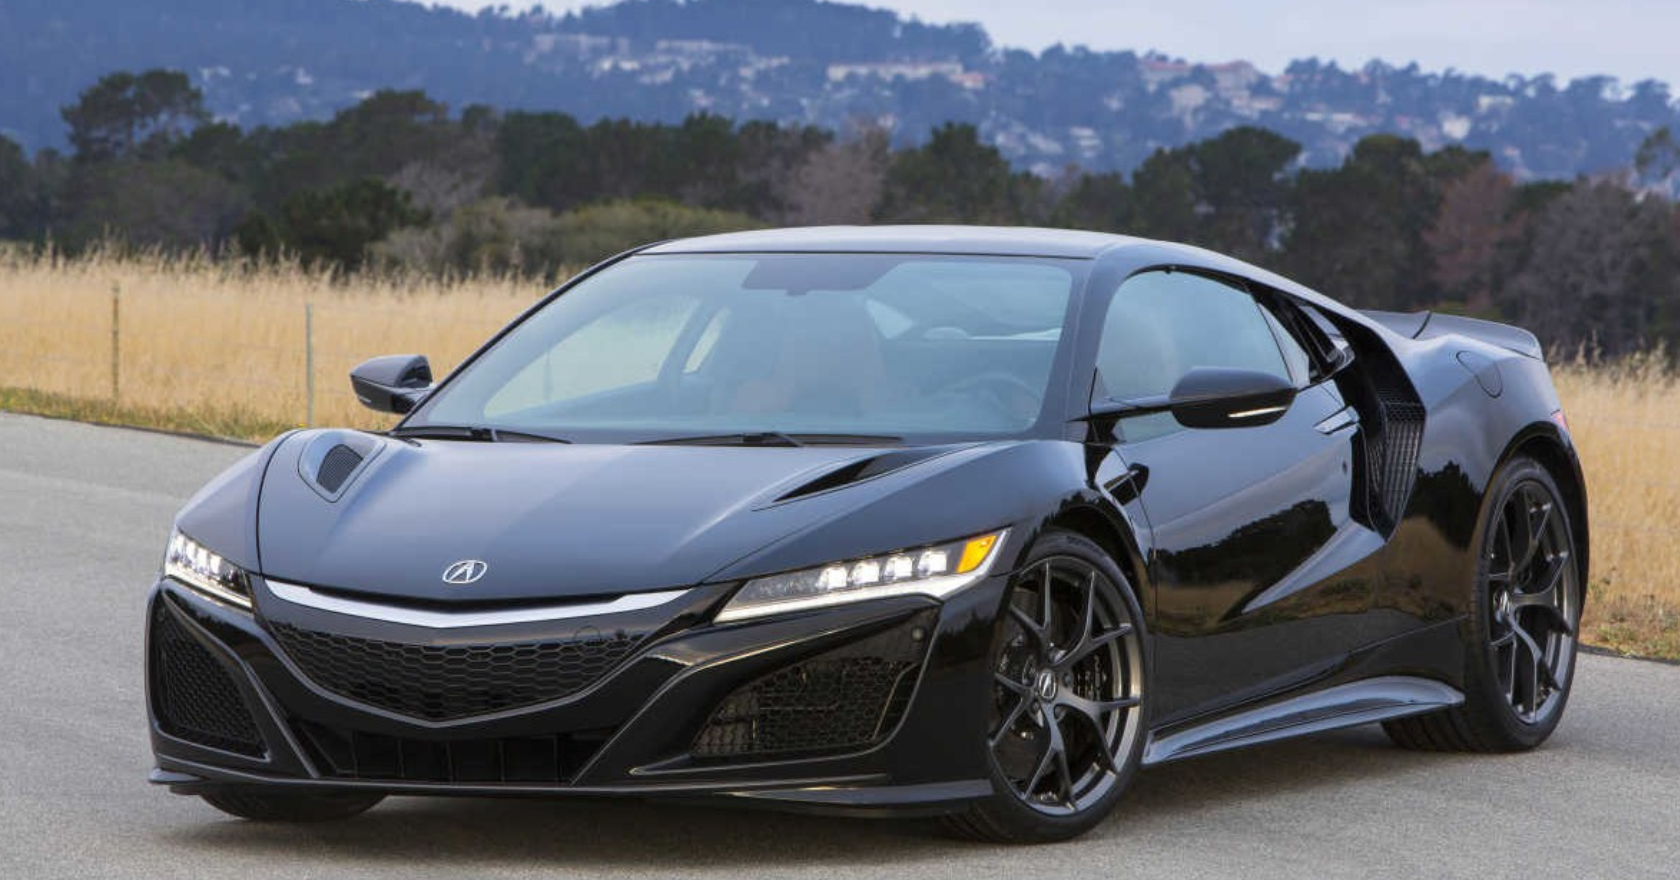 2019 Acura Integra Type R Engine Interior Release Date Most Updated Reviews Propose That The Japanese Company Could Take One Am Supercars Mobil Sport Mobil